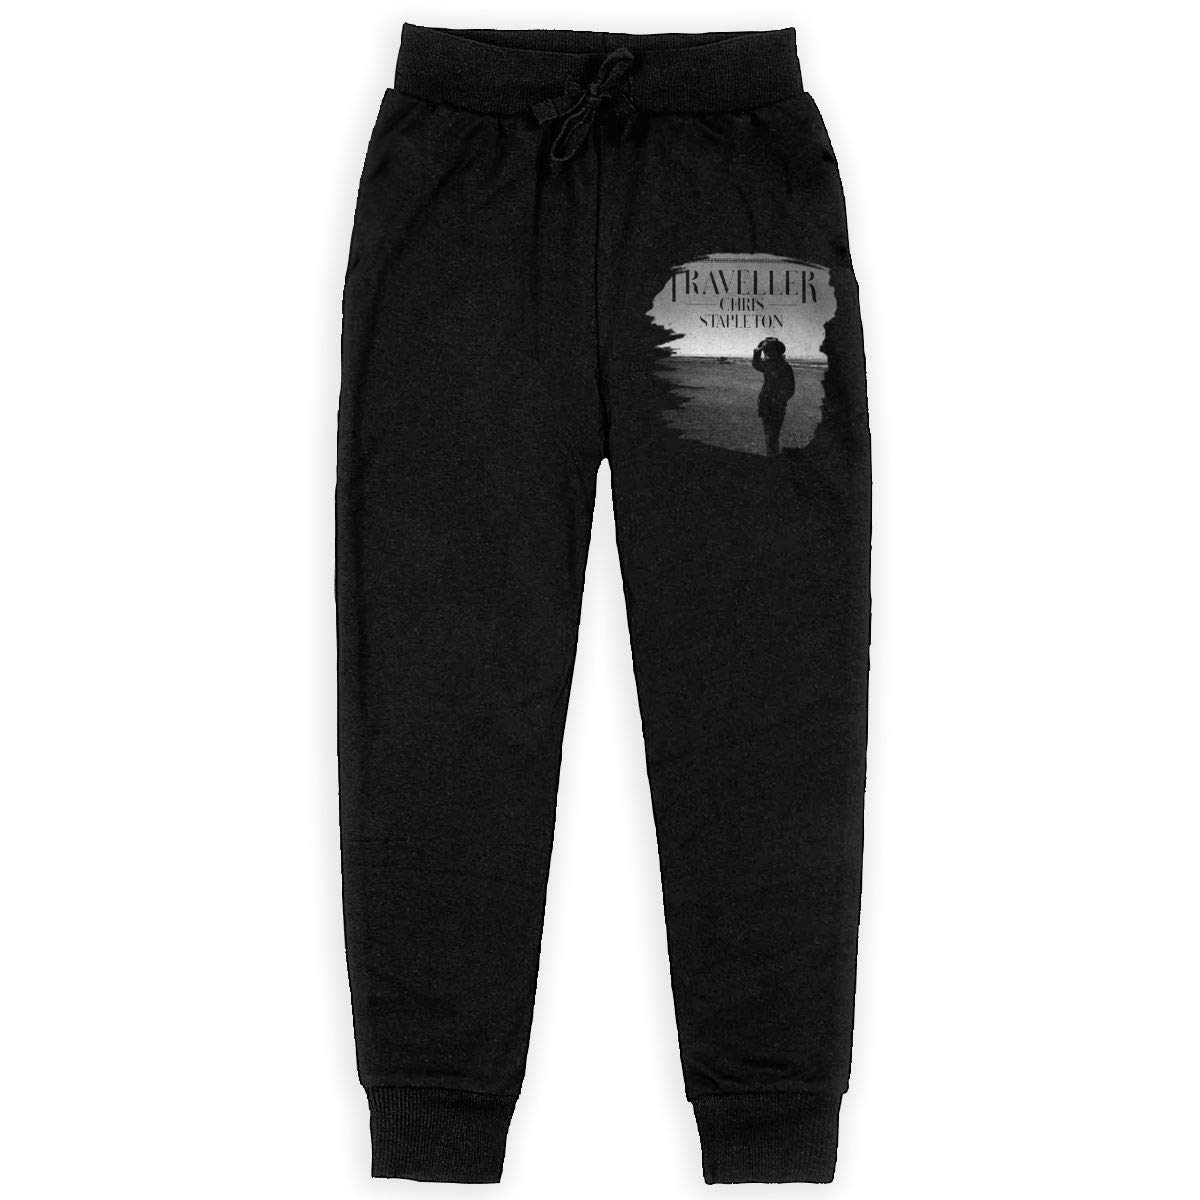 Tangzhikai Unisex Teens Chris Stapleton Traveller Fashionable Music Band Fans Daily Sweatpants for Boys Gift with Pockets